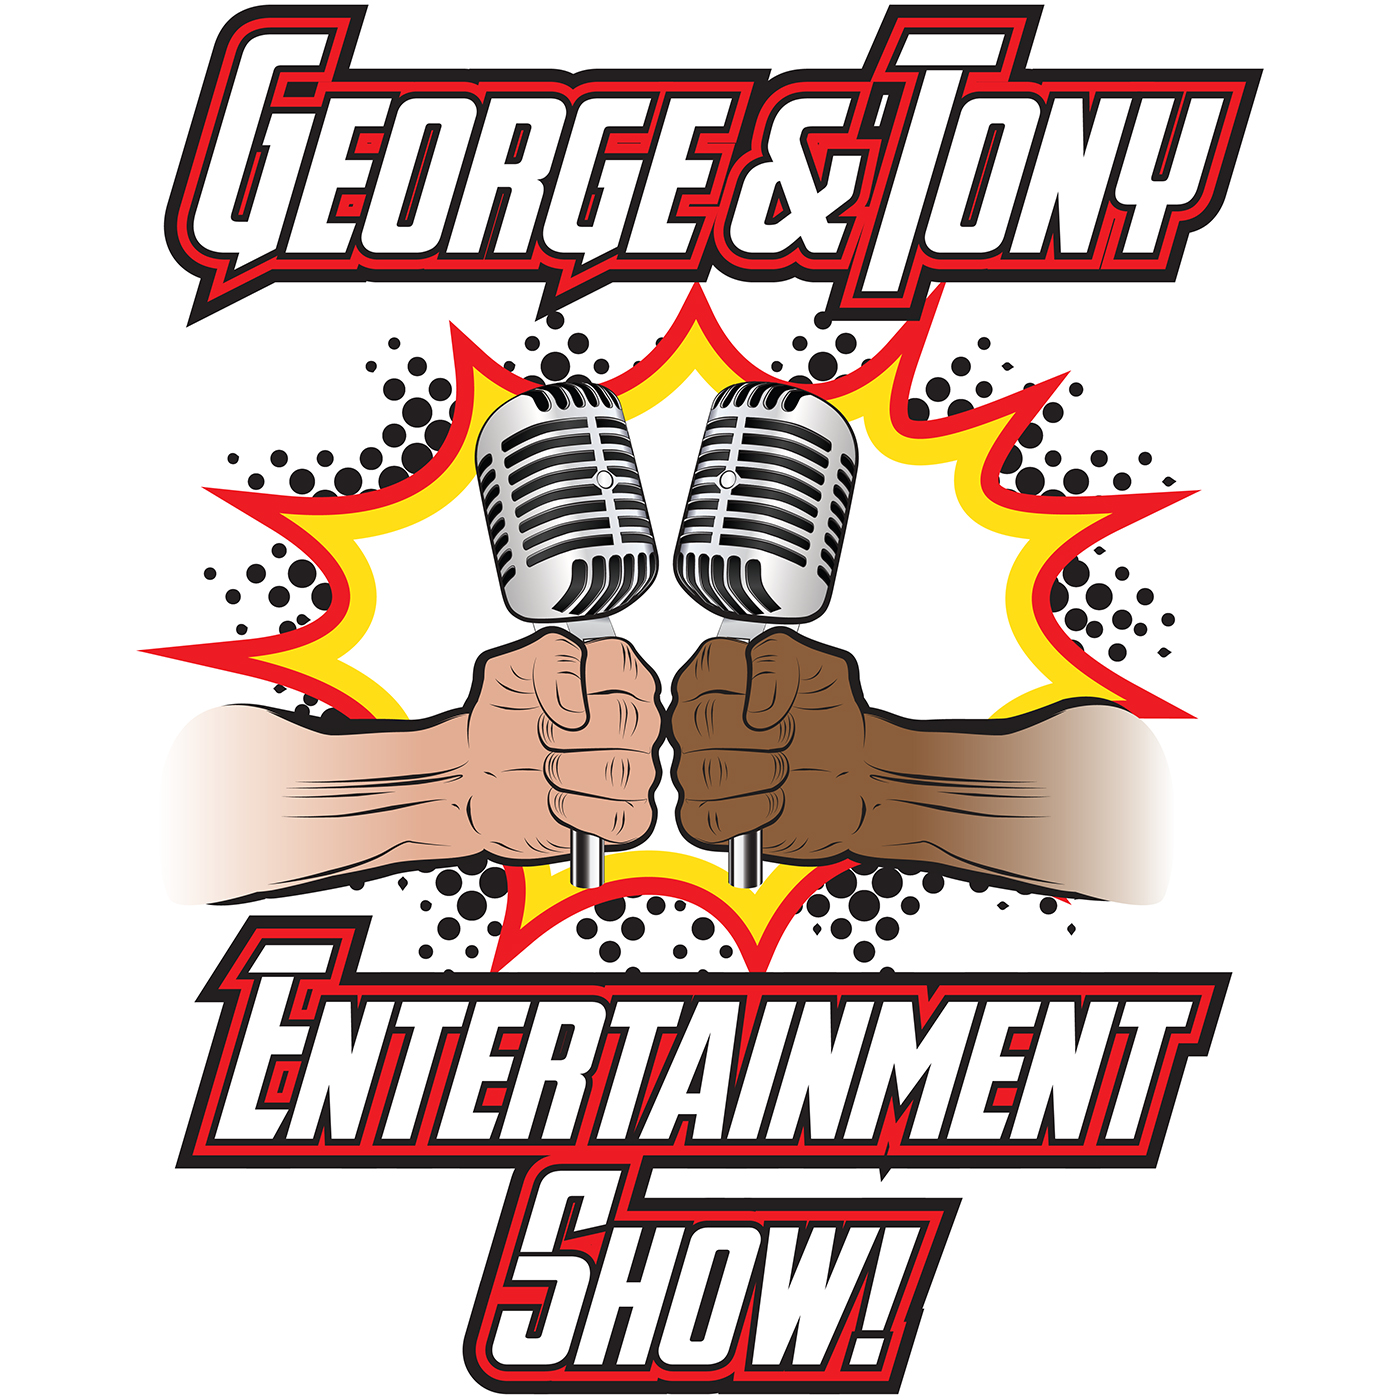 George and Tony Entertainment Show #80